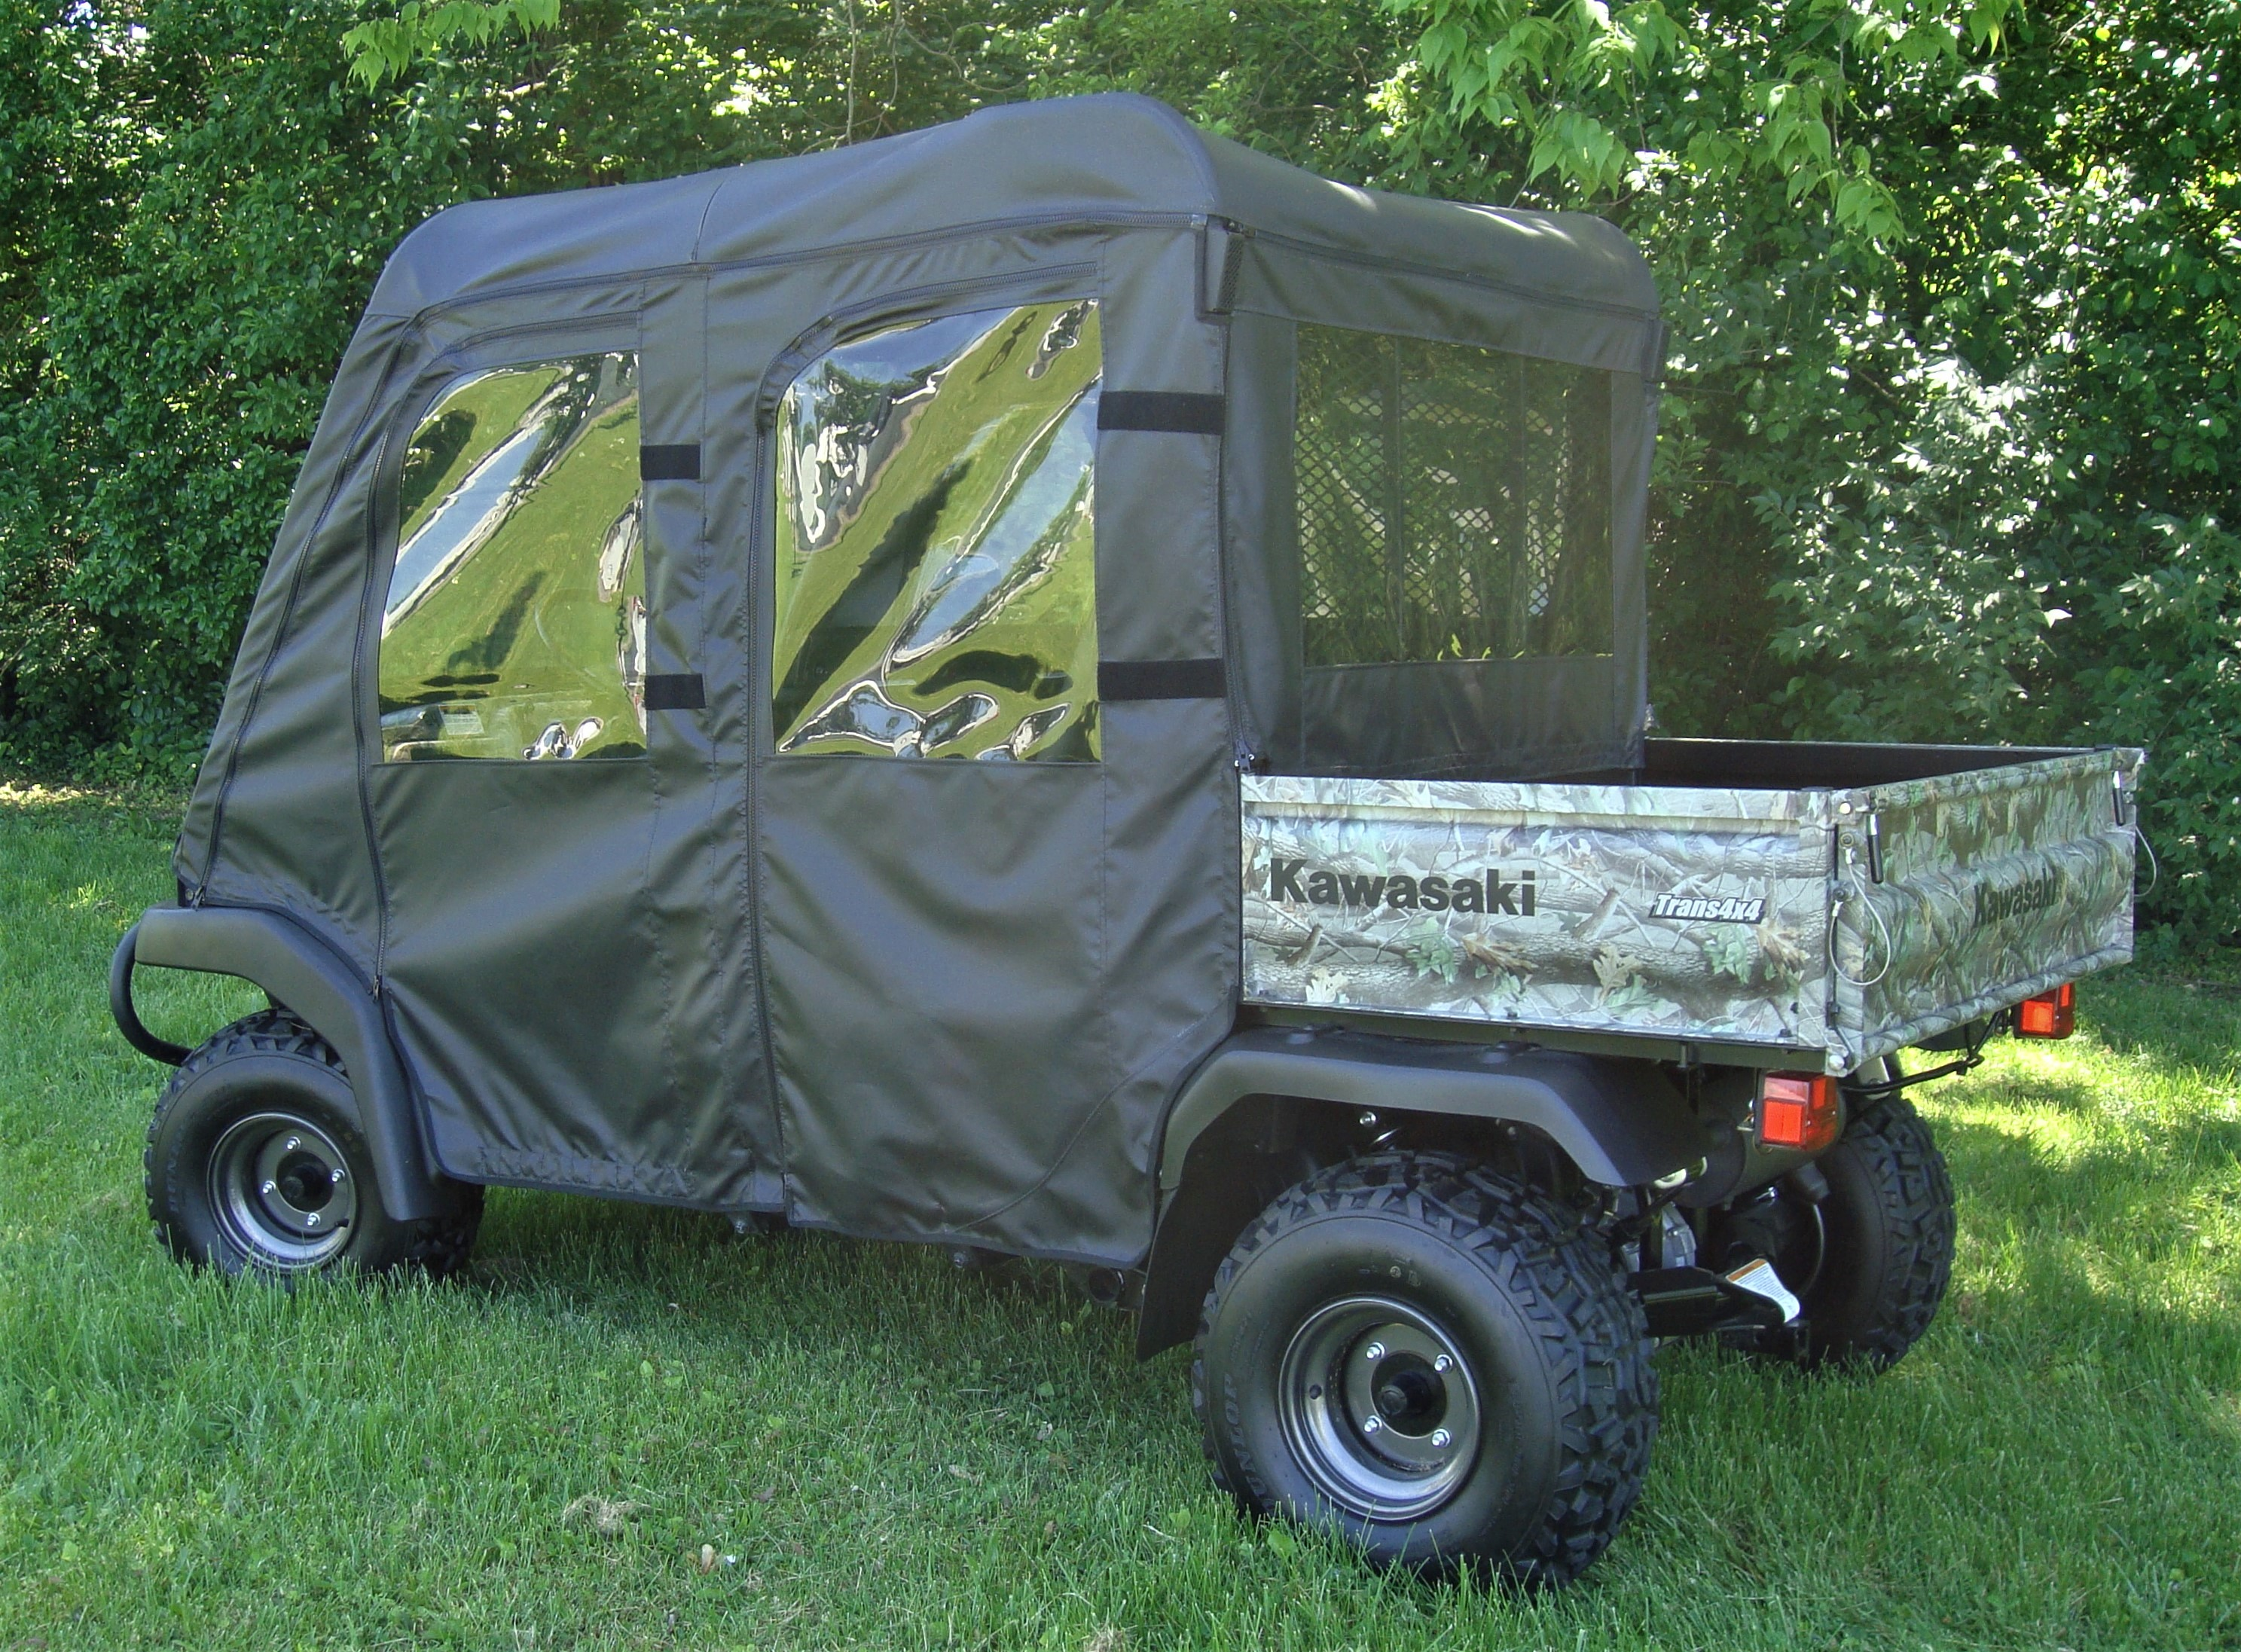 A/&S AUDIO AND SHIELD DESIGNS KAWASAKI MULE 3000,3010 TRANS 4X4 FULL AND FLIP UP 3//16 POLYCARBONATE WINDSHIELD